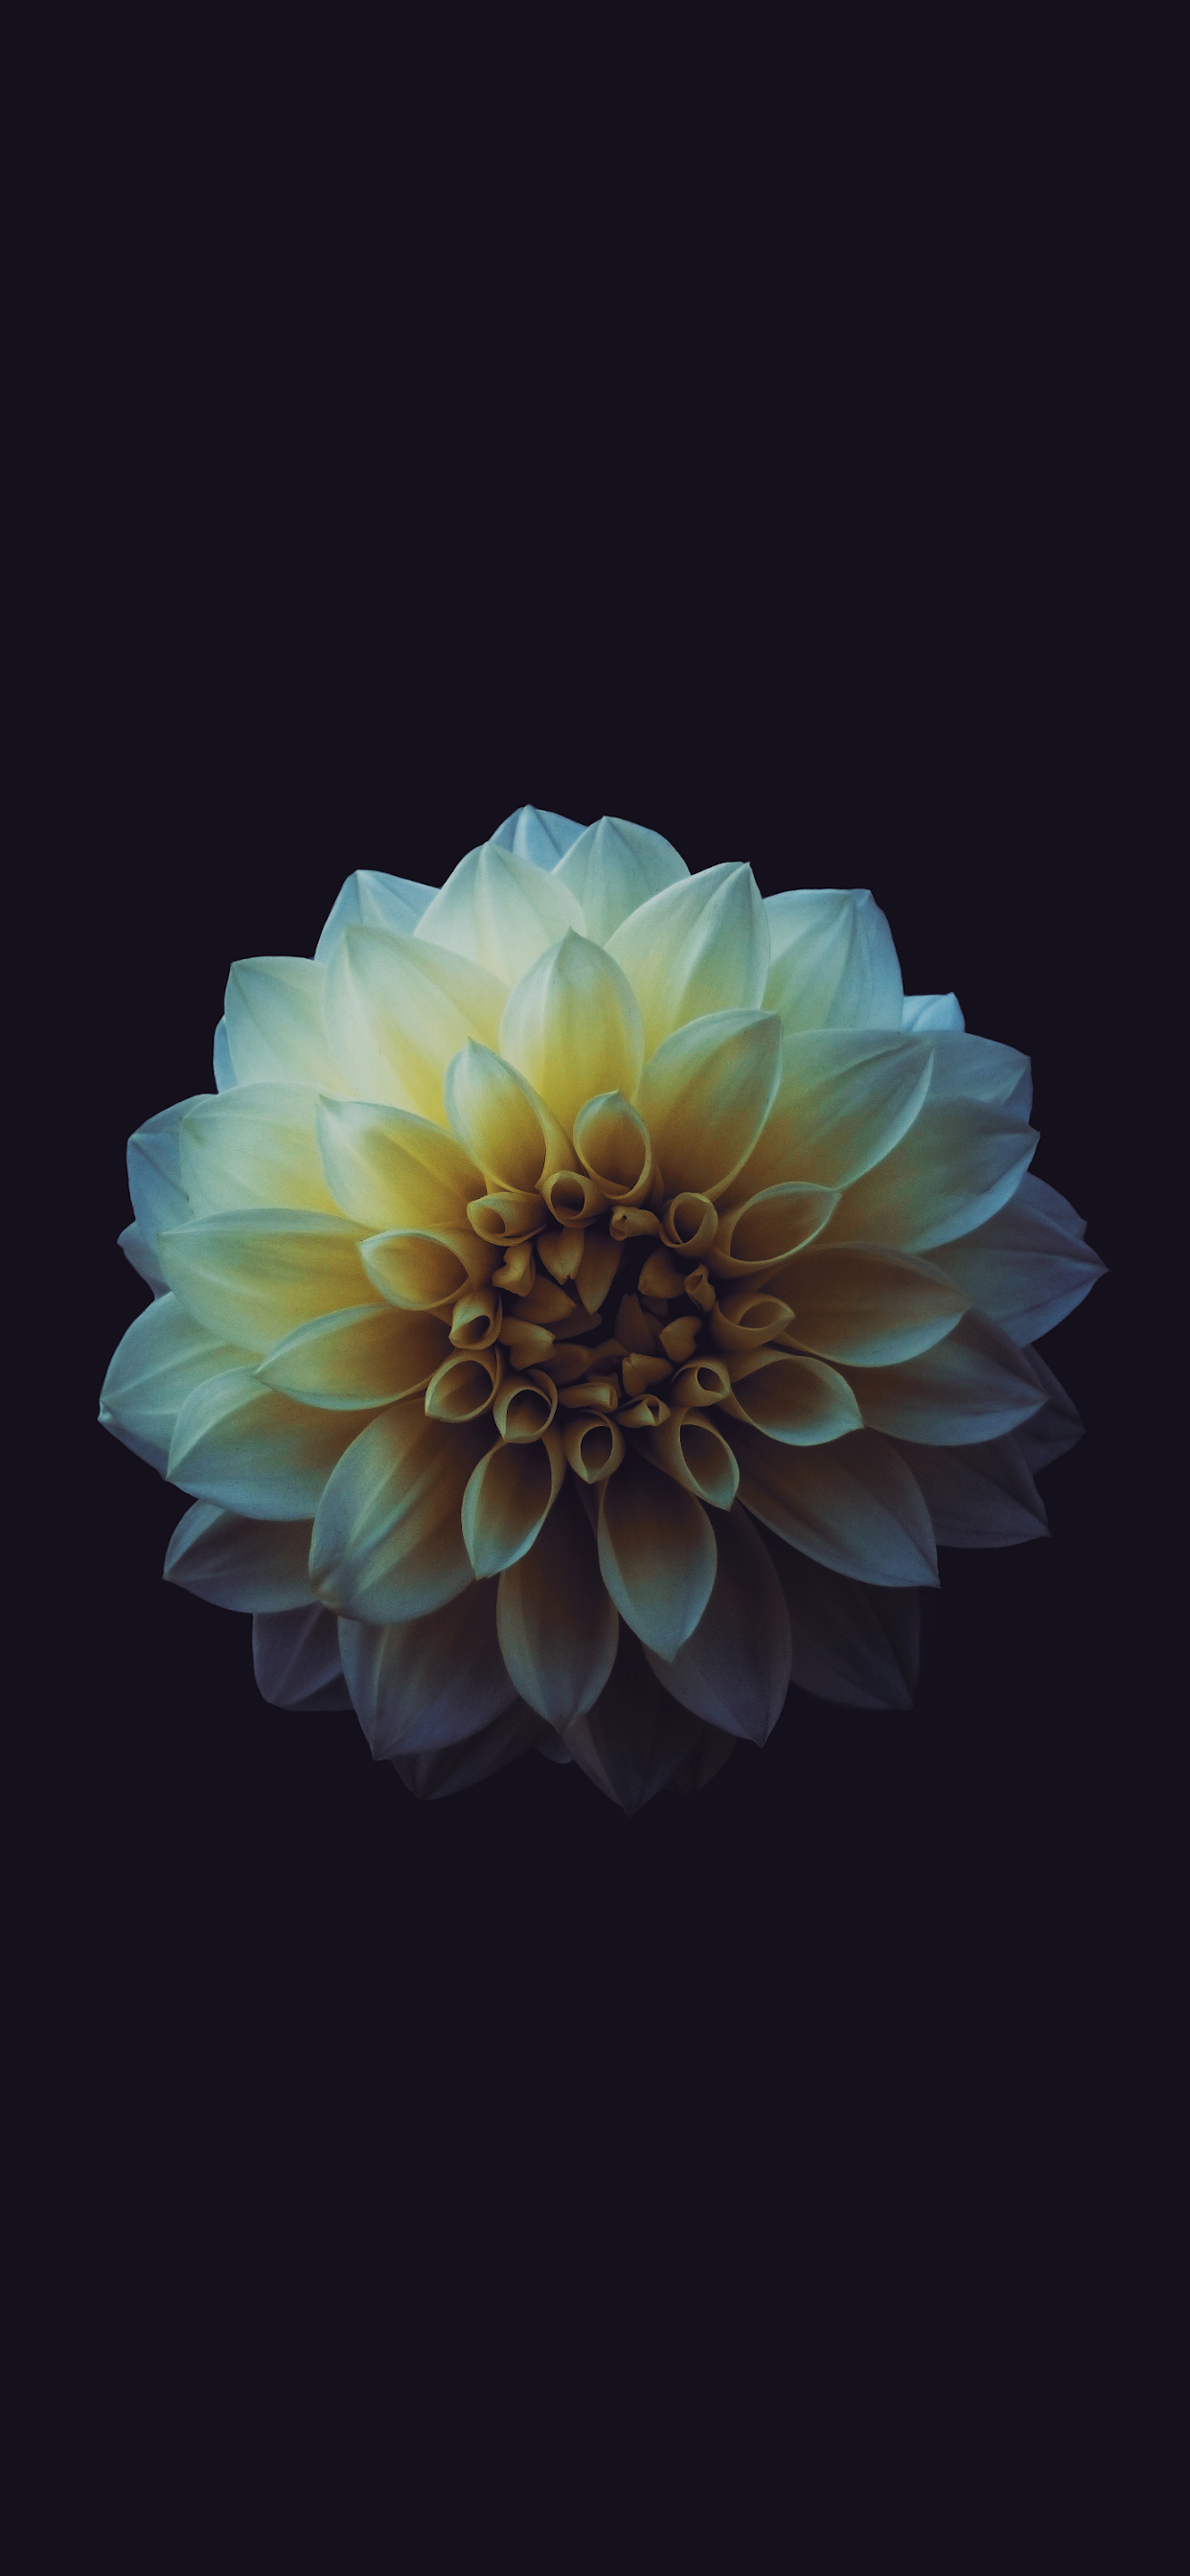 iPhone wallpapers flowers dahlia blossom Flowers